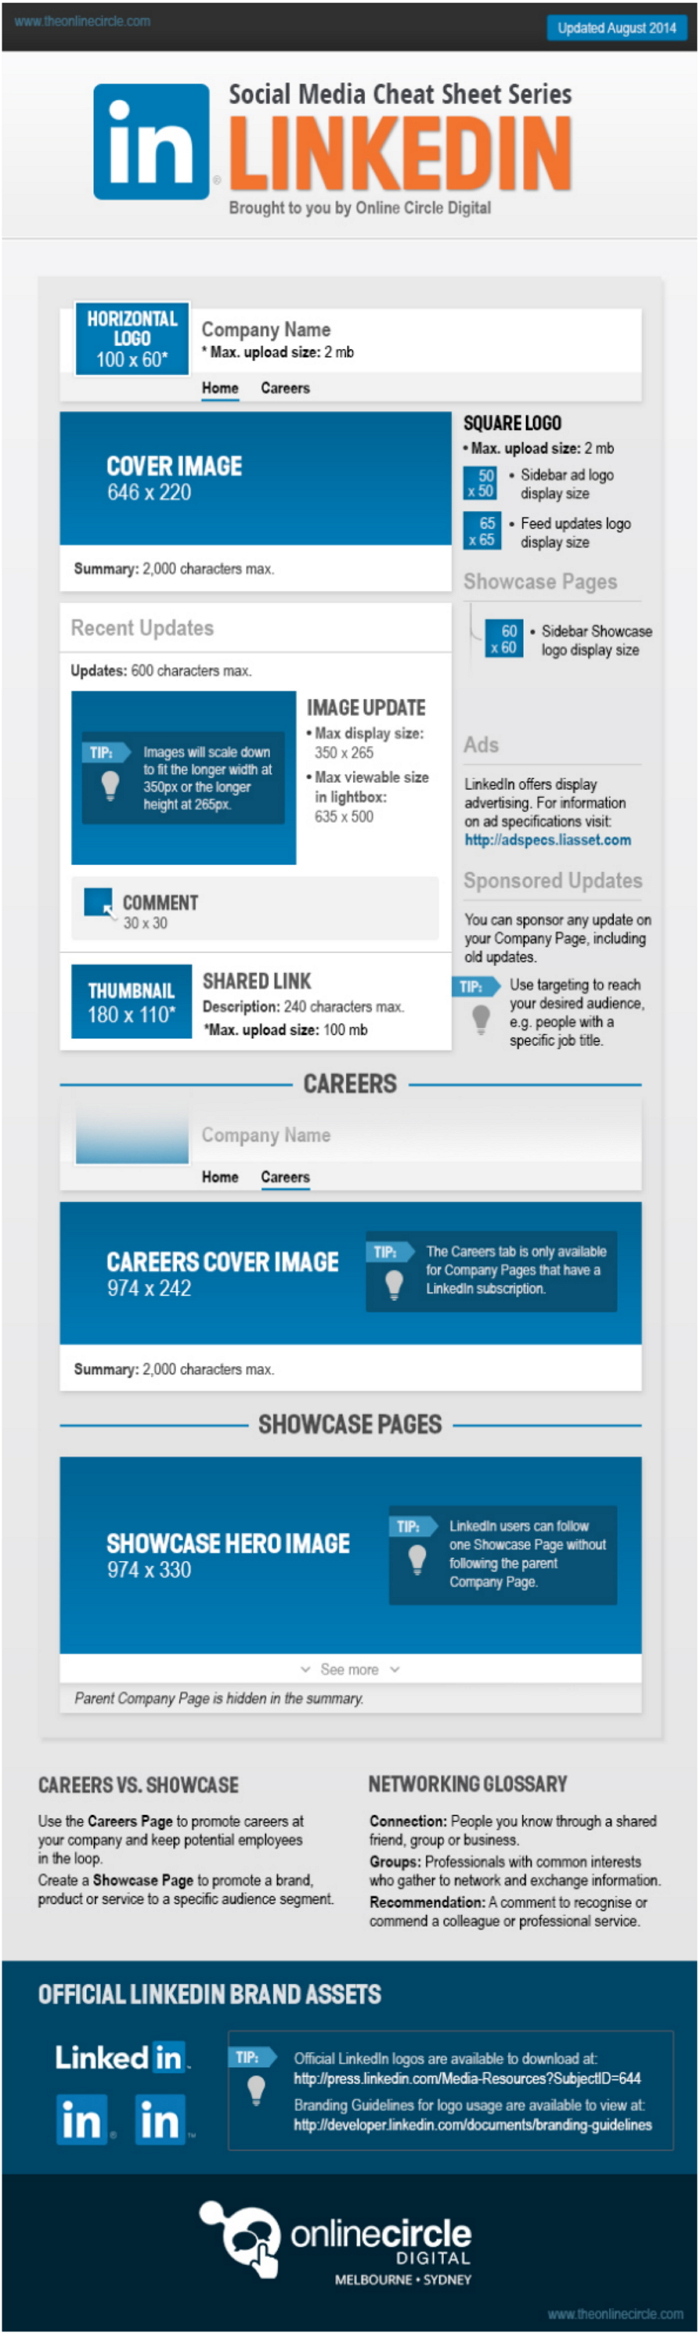 social-media-cheat-sheet-linkedin